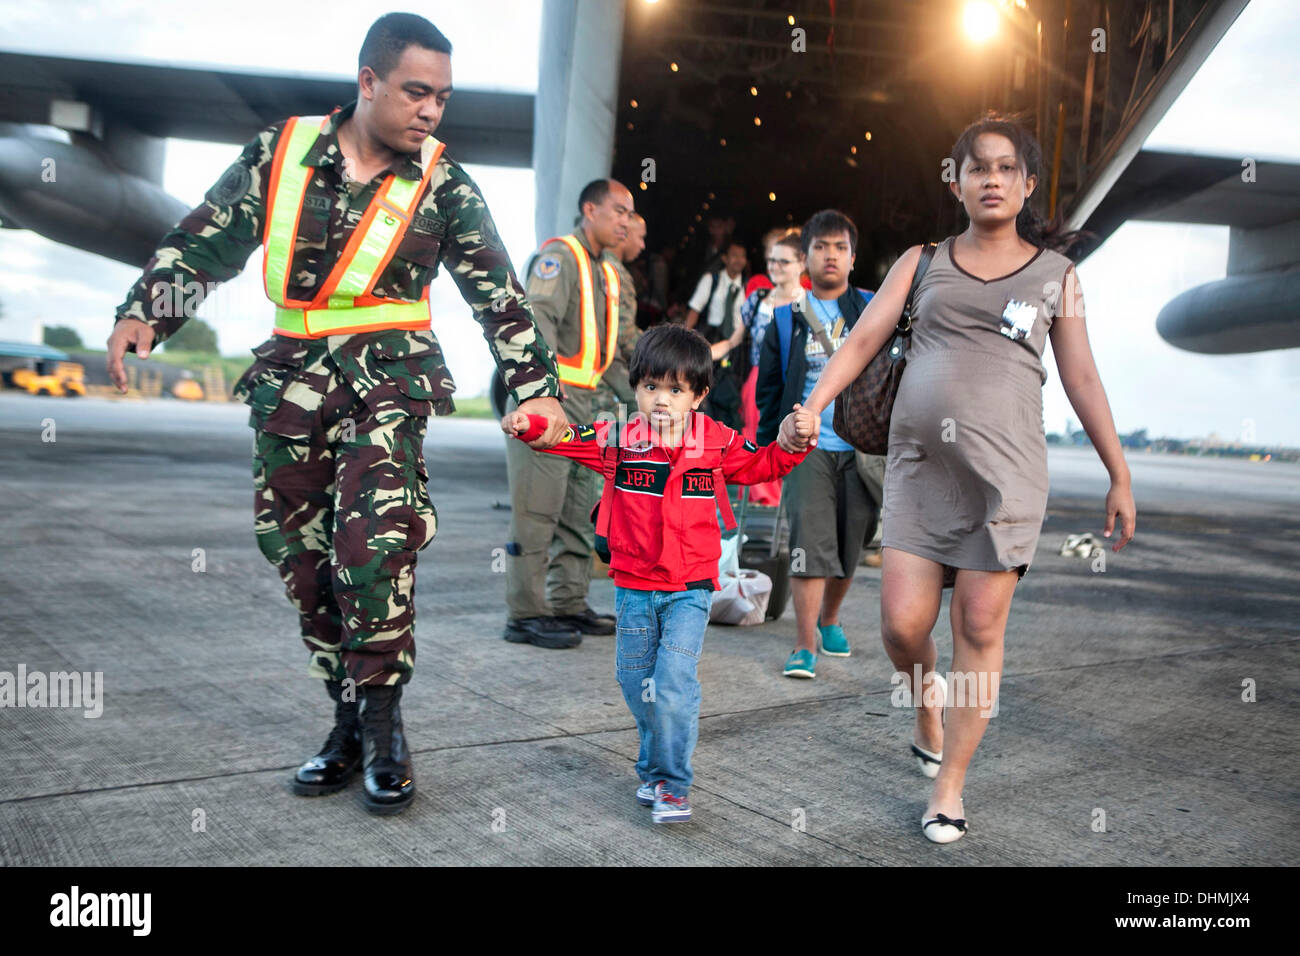 An Airman with the Philippine Air Force helps offload Filipino civilians out of a U.S. Marine C-130 Hercules aircraft at Villamor Air Base evacuated from Tacloban November 12, 2013 in Manila, Philippines. The super typhoon devastated wide areas of the islands and killed as many as 10,000 people. - Stock Image